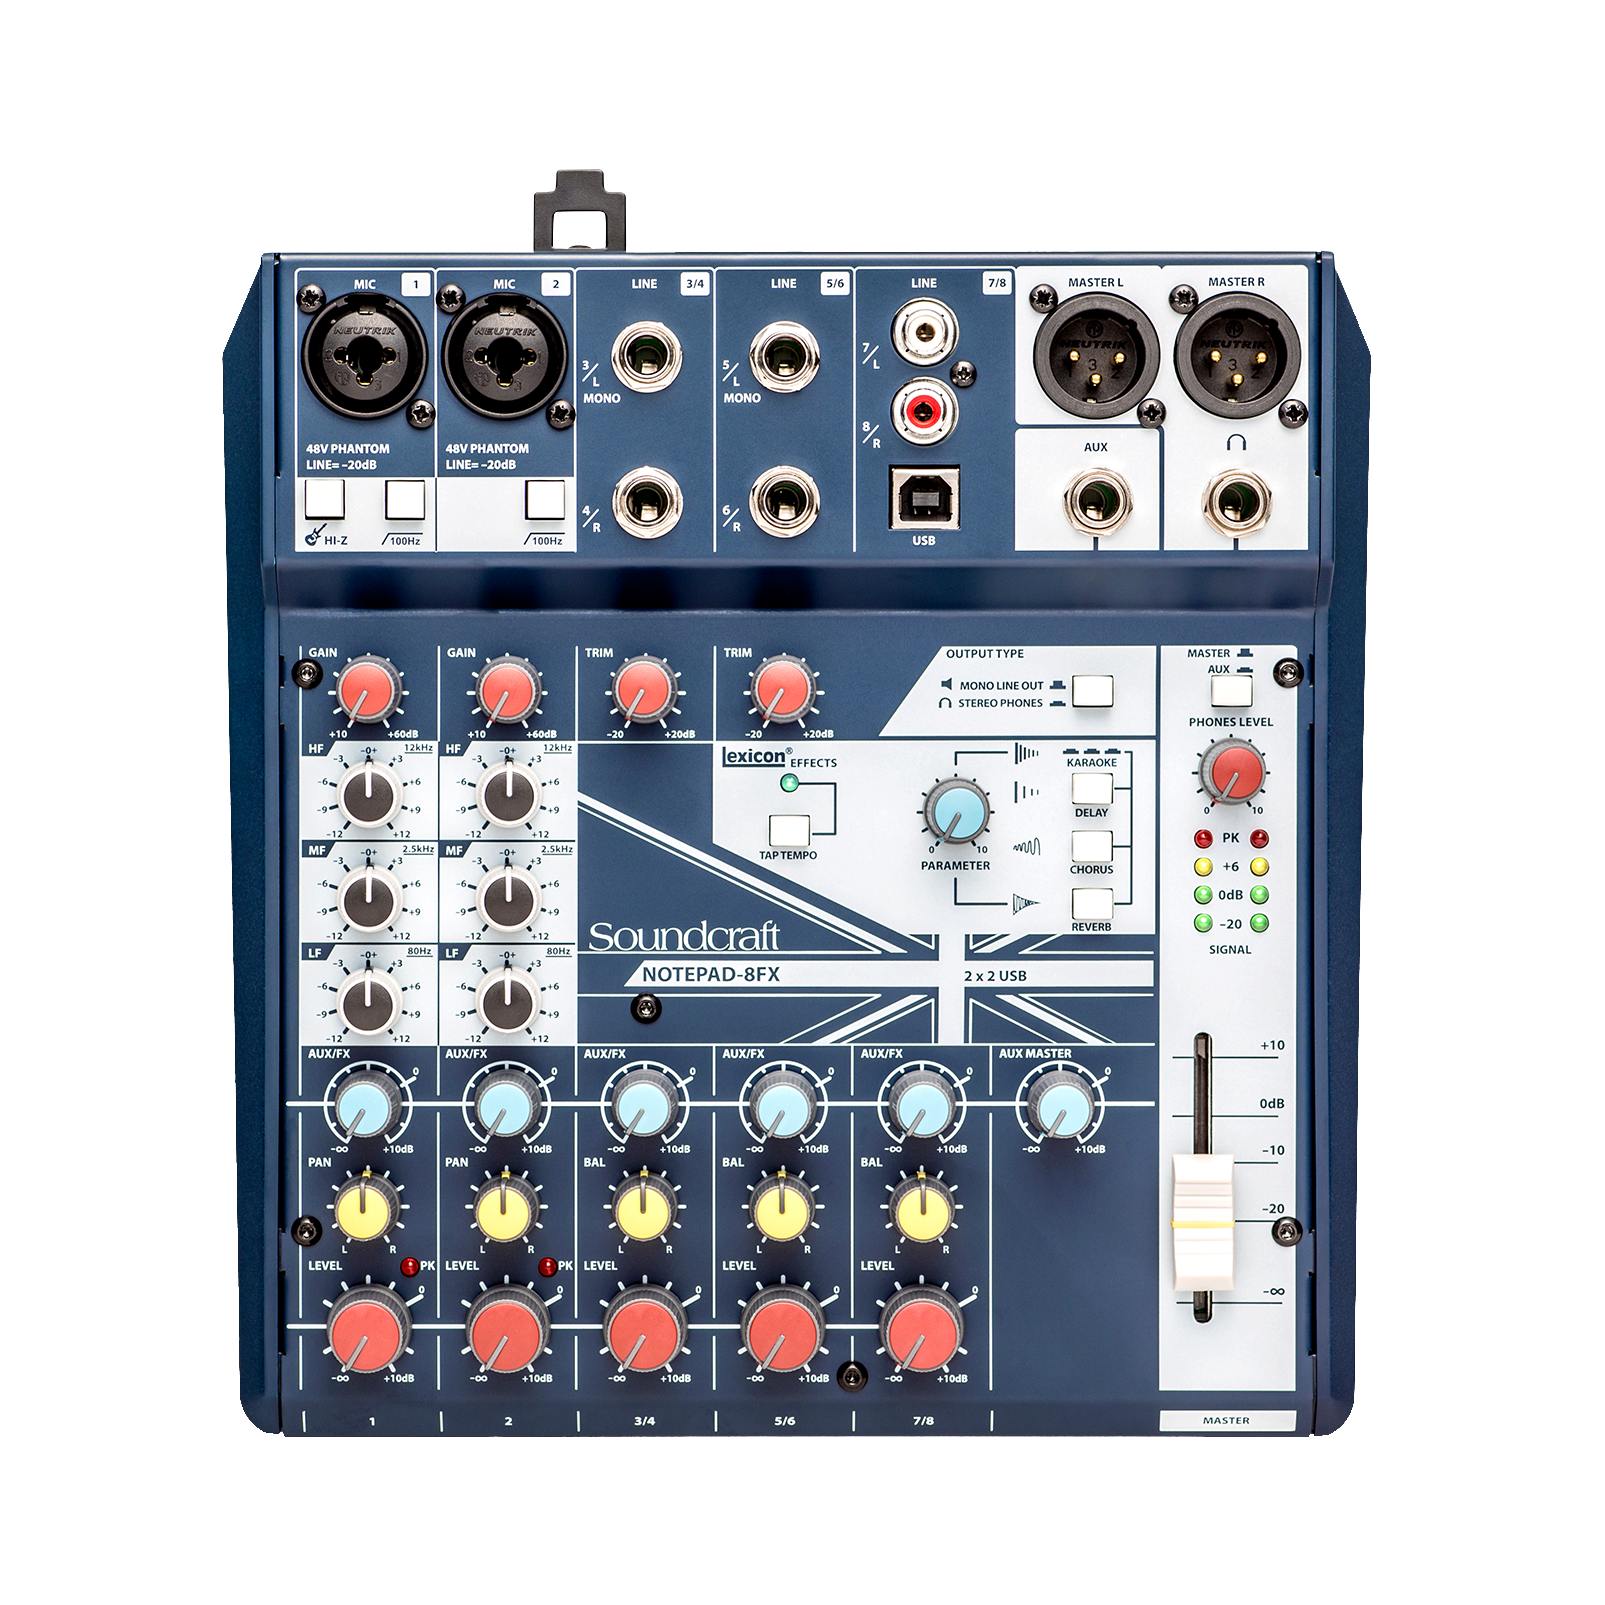 Notepad-8FX (B-Stock) - Dark Blue - Small-format analog mixing console with USB I/O and Lexicon effects - Front